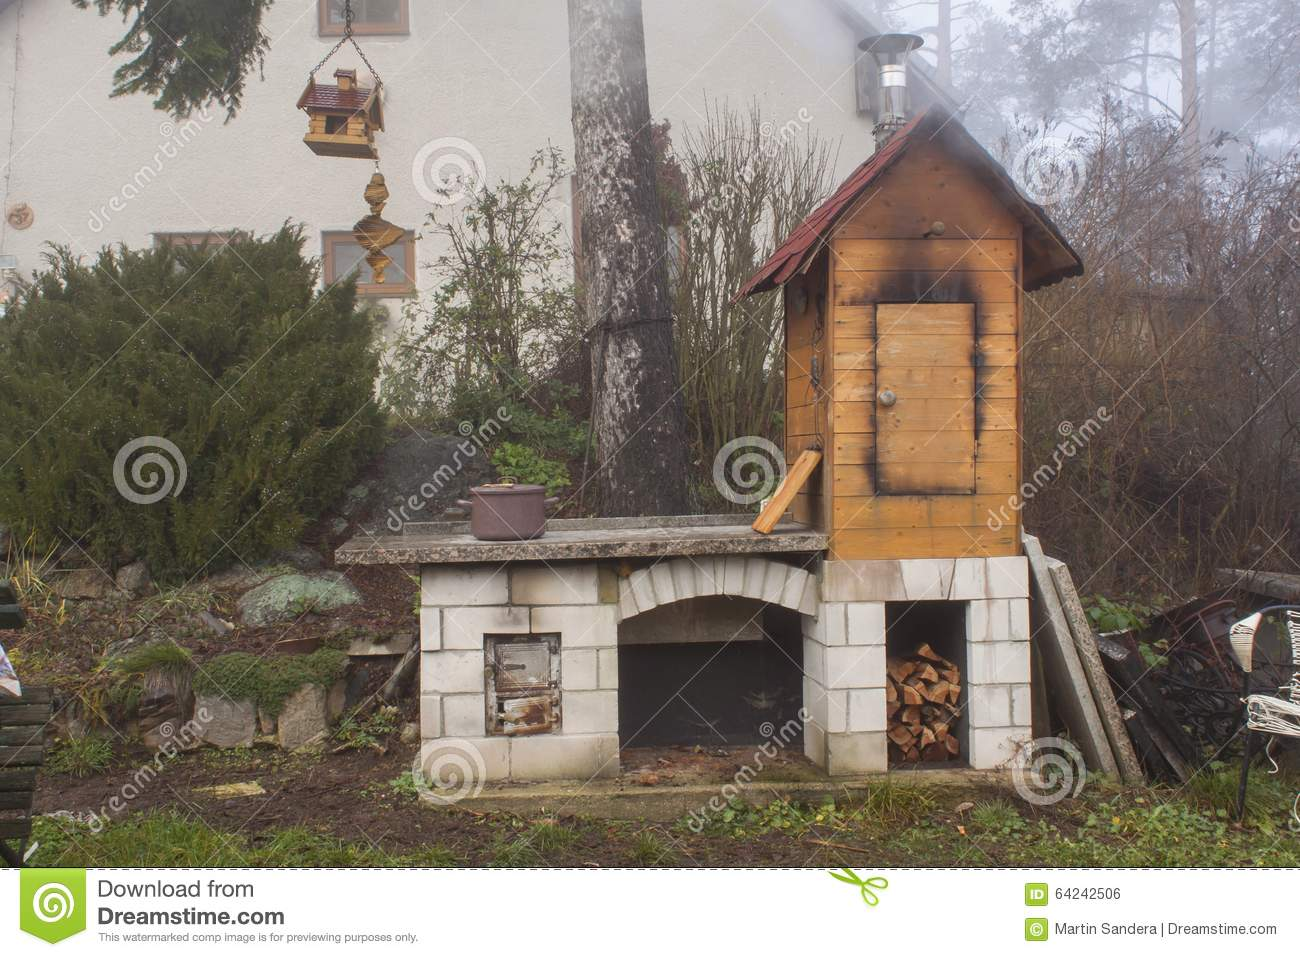 old fashioned smokehouse plans images reverse search